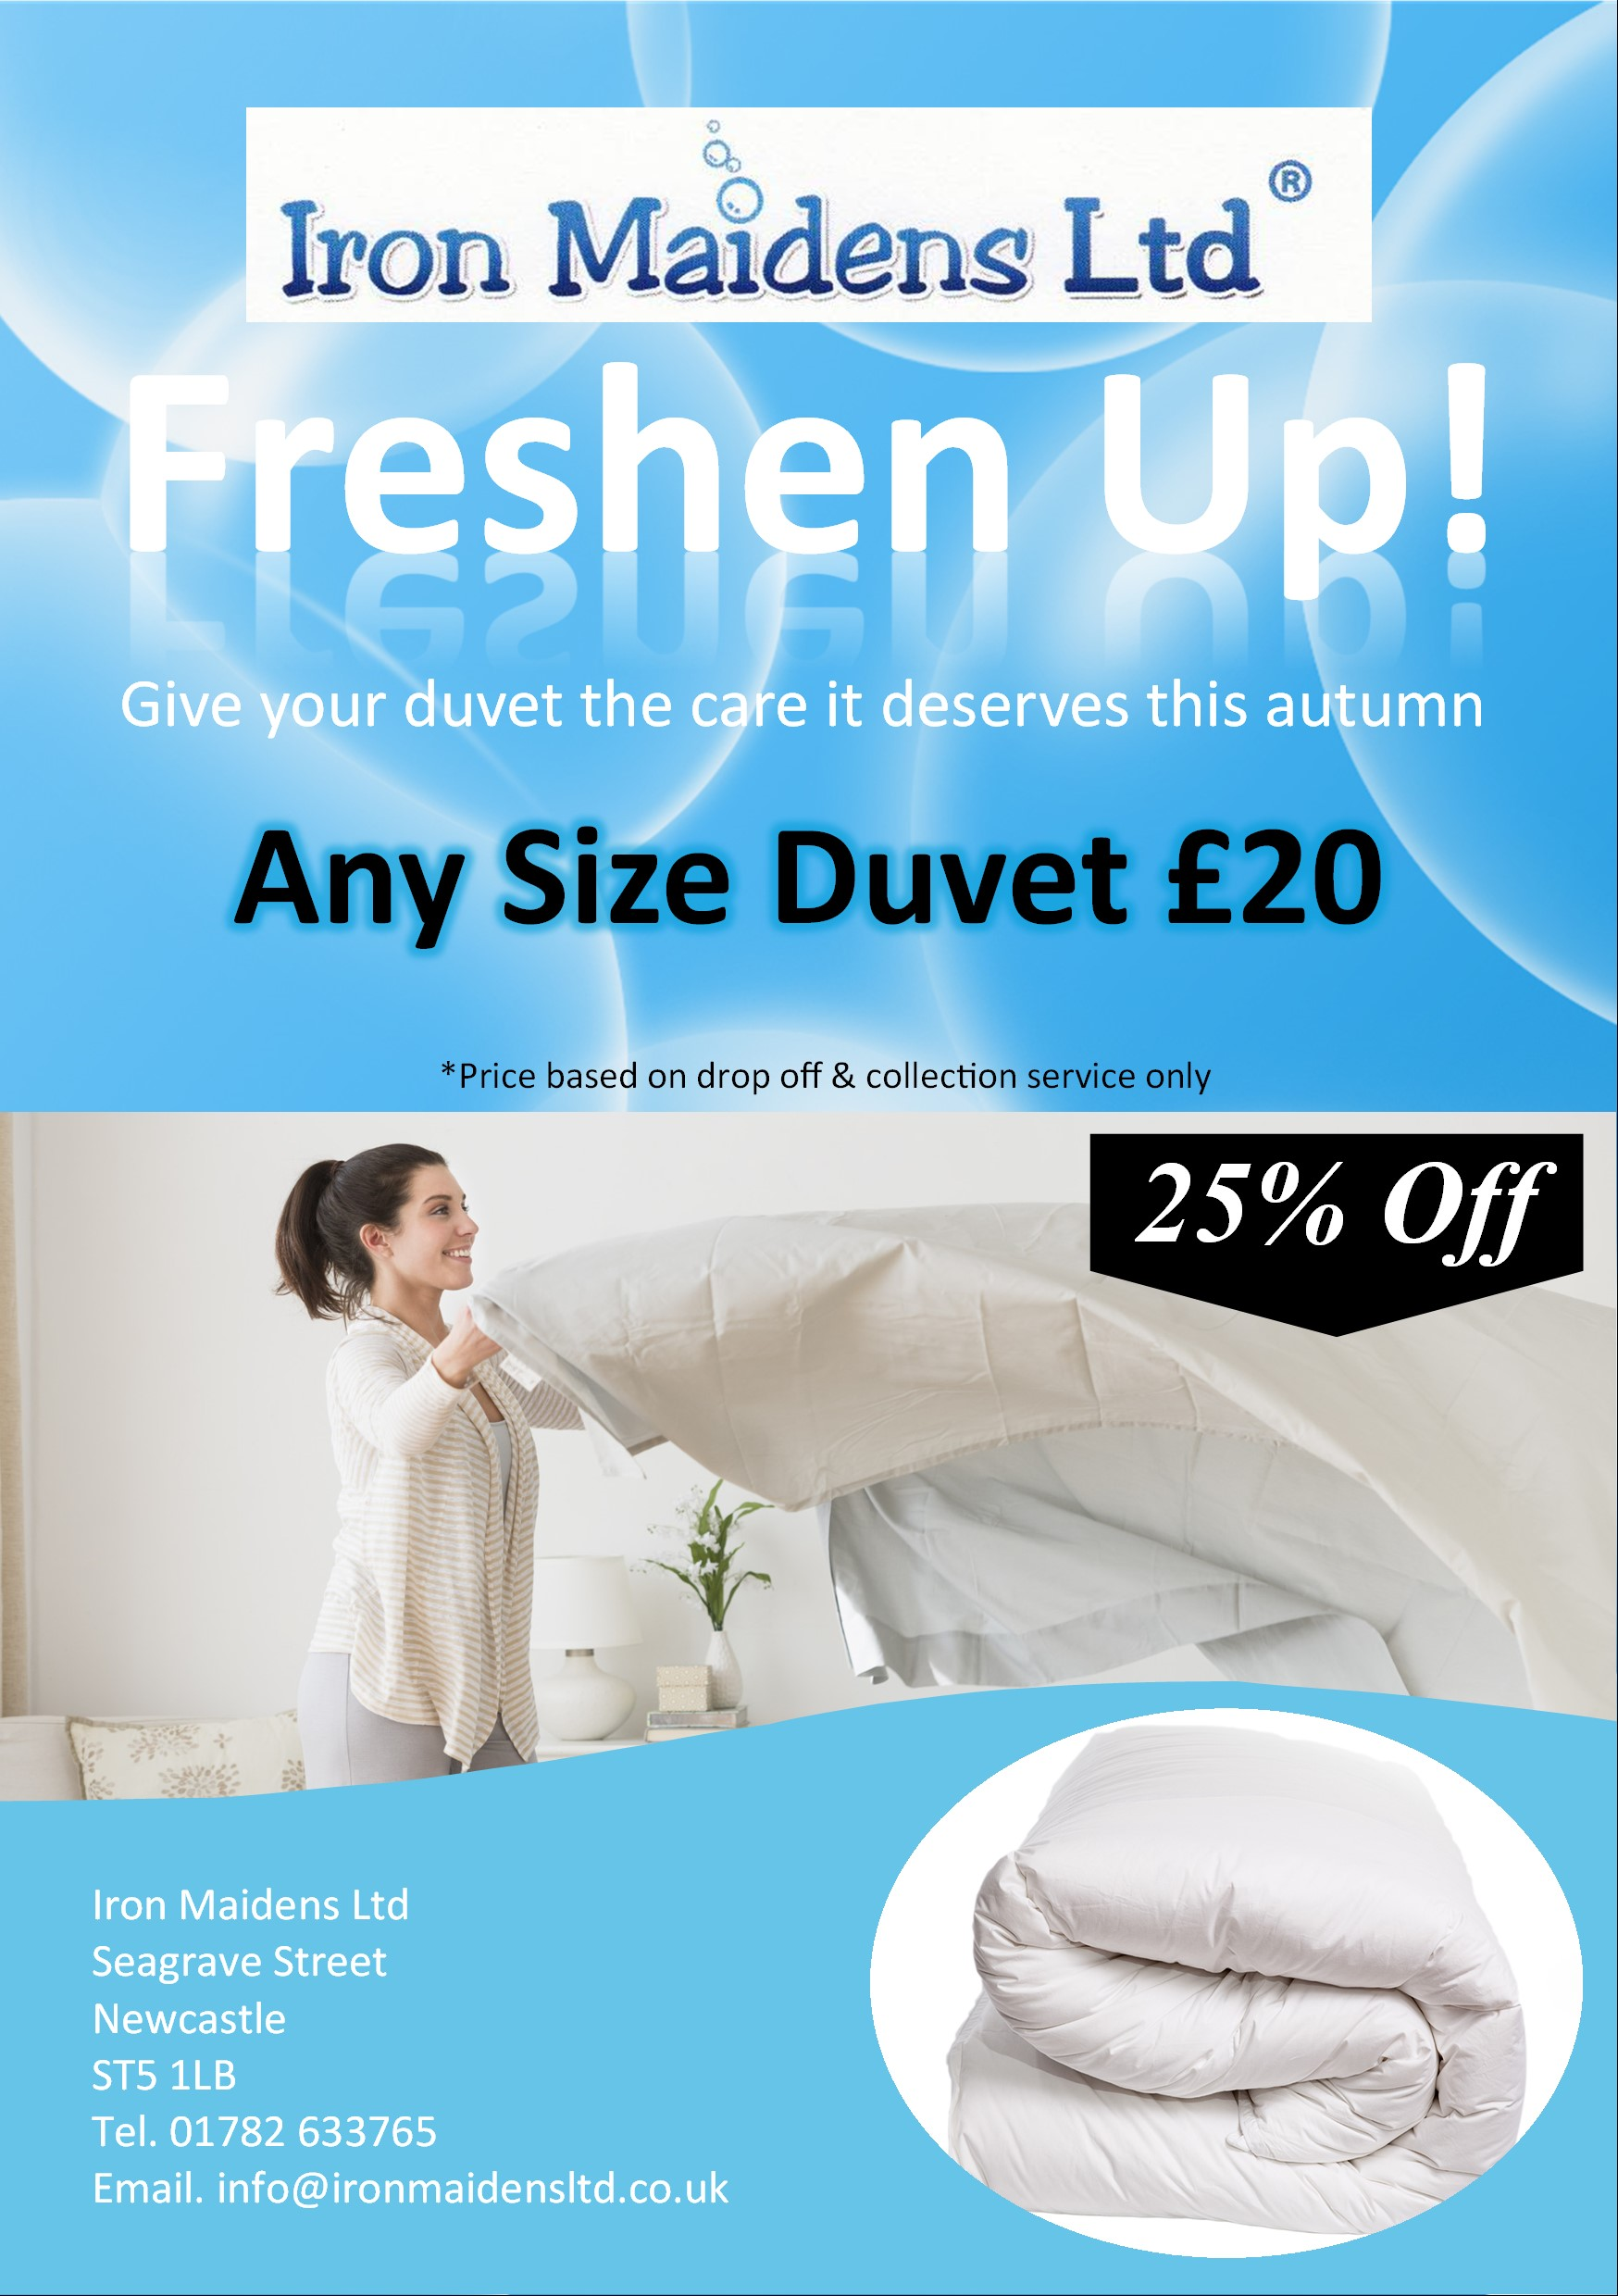 Image of Duvet Offer ofor £20